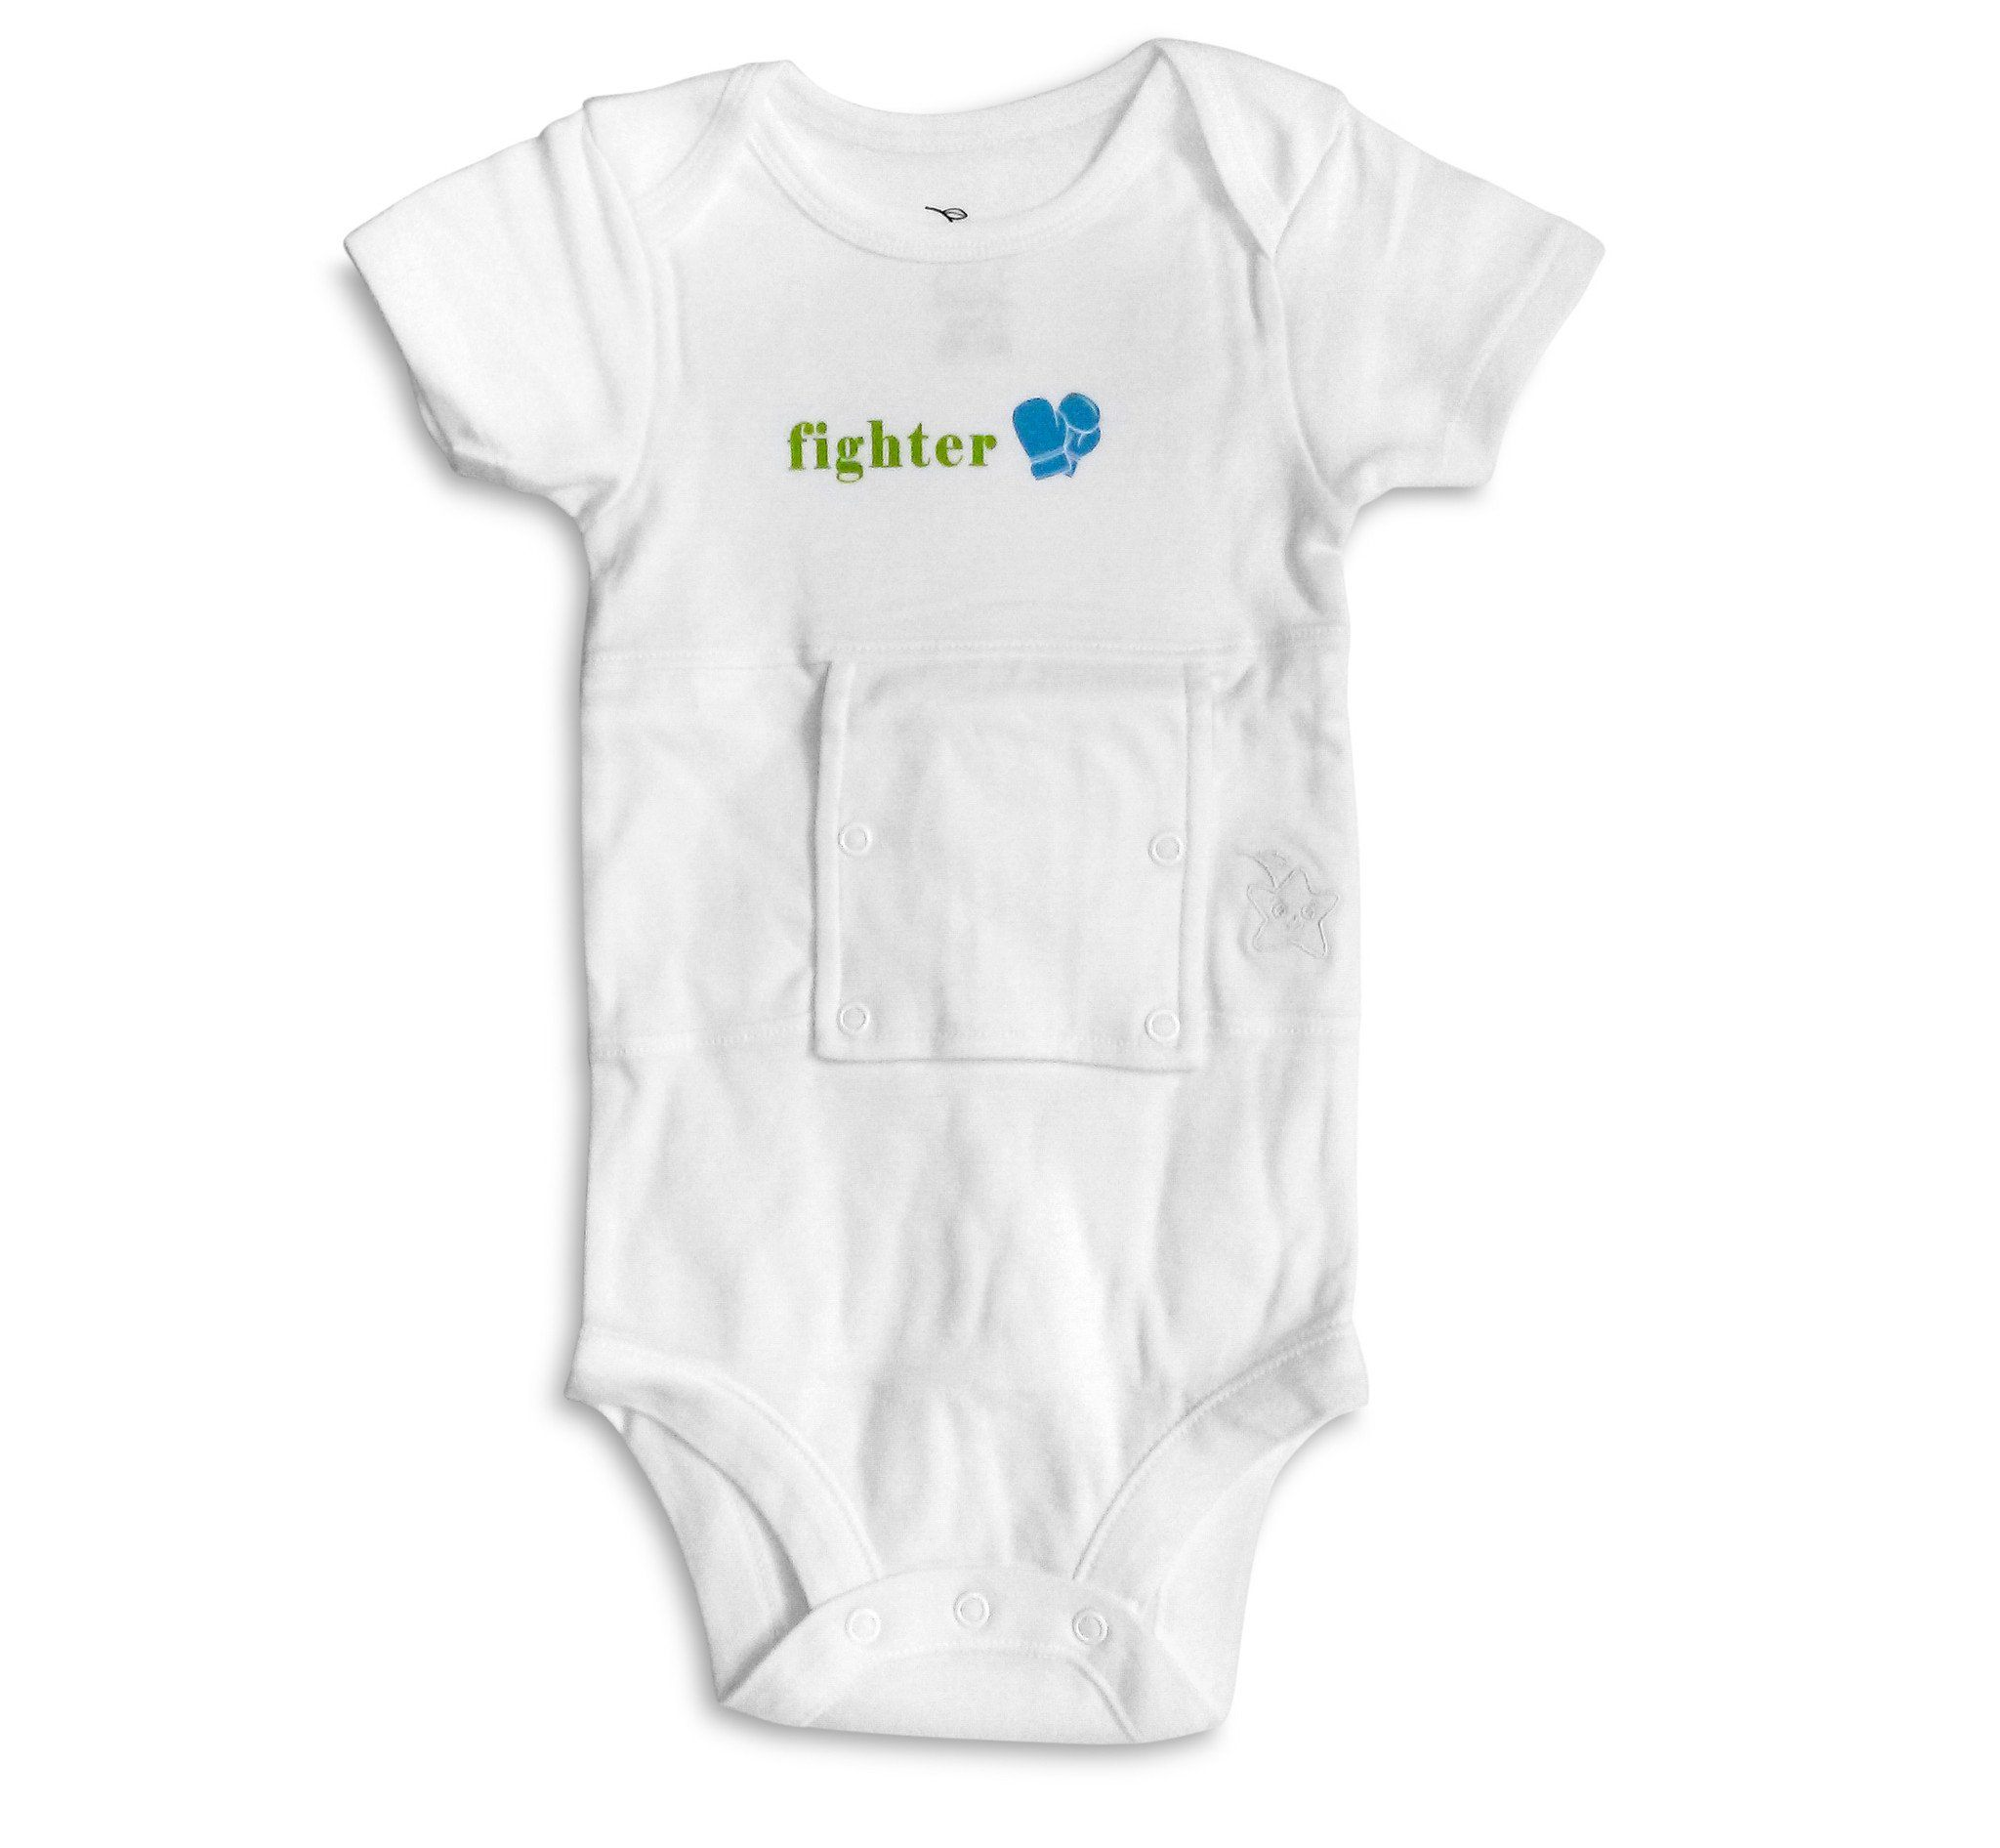 Fighter Feeding Tube Onesie